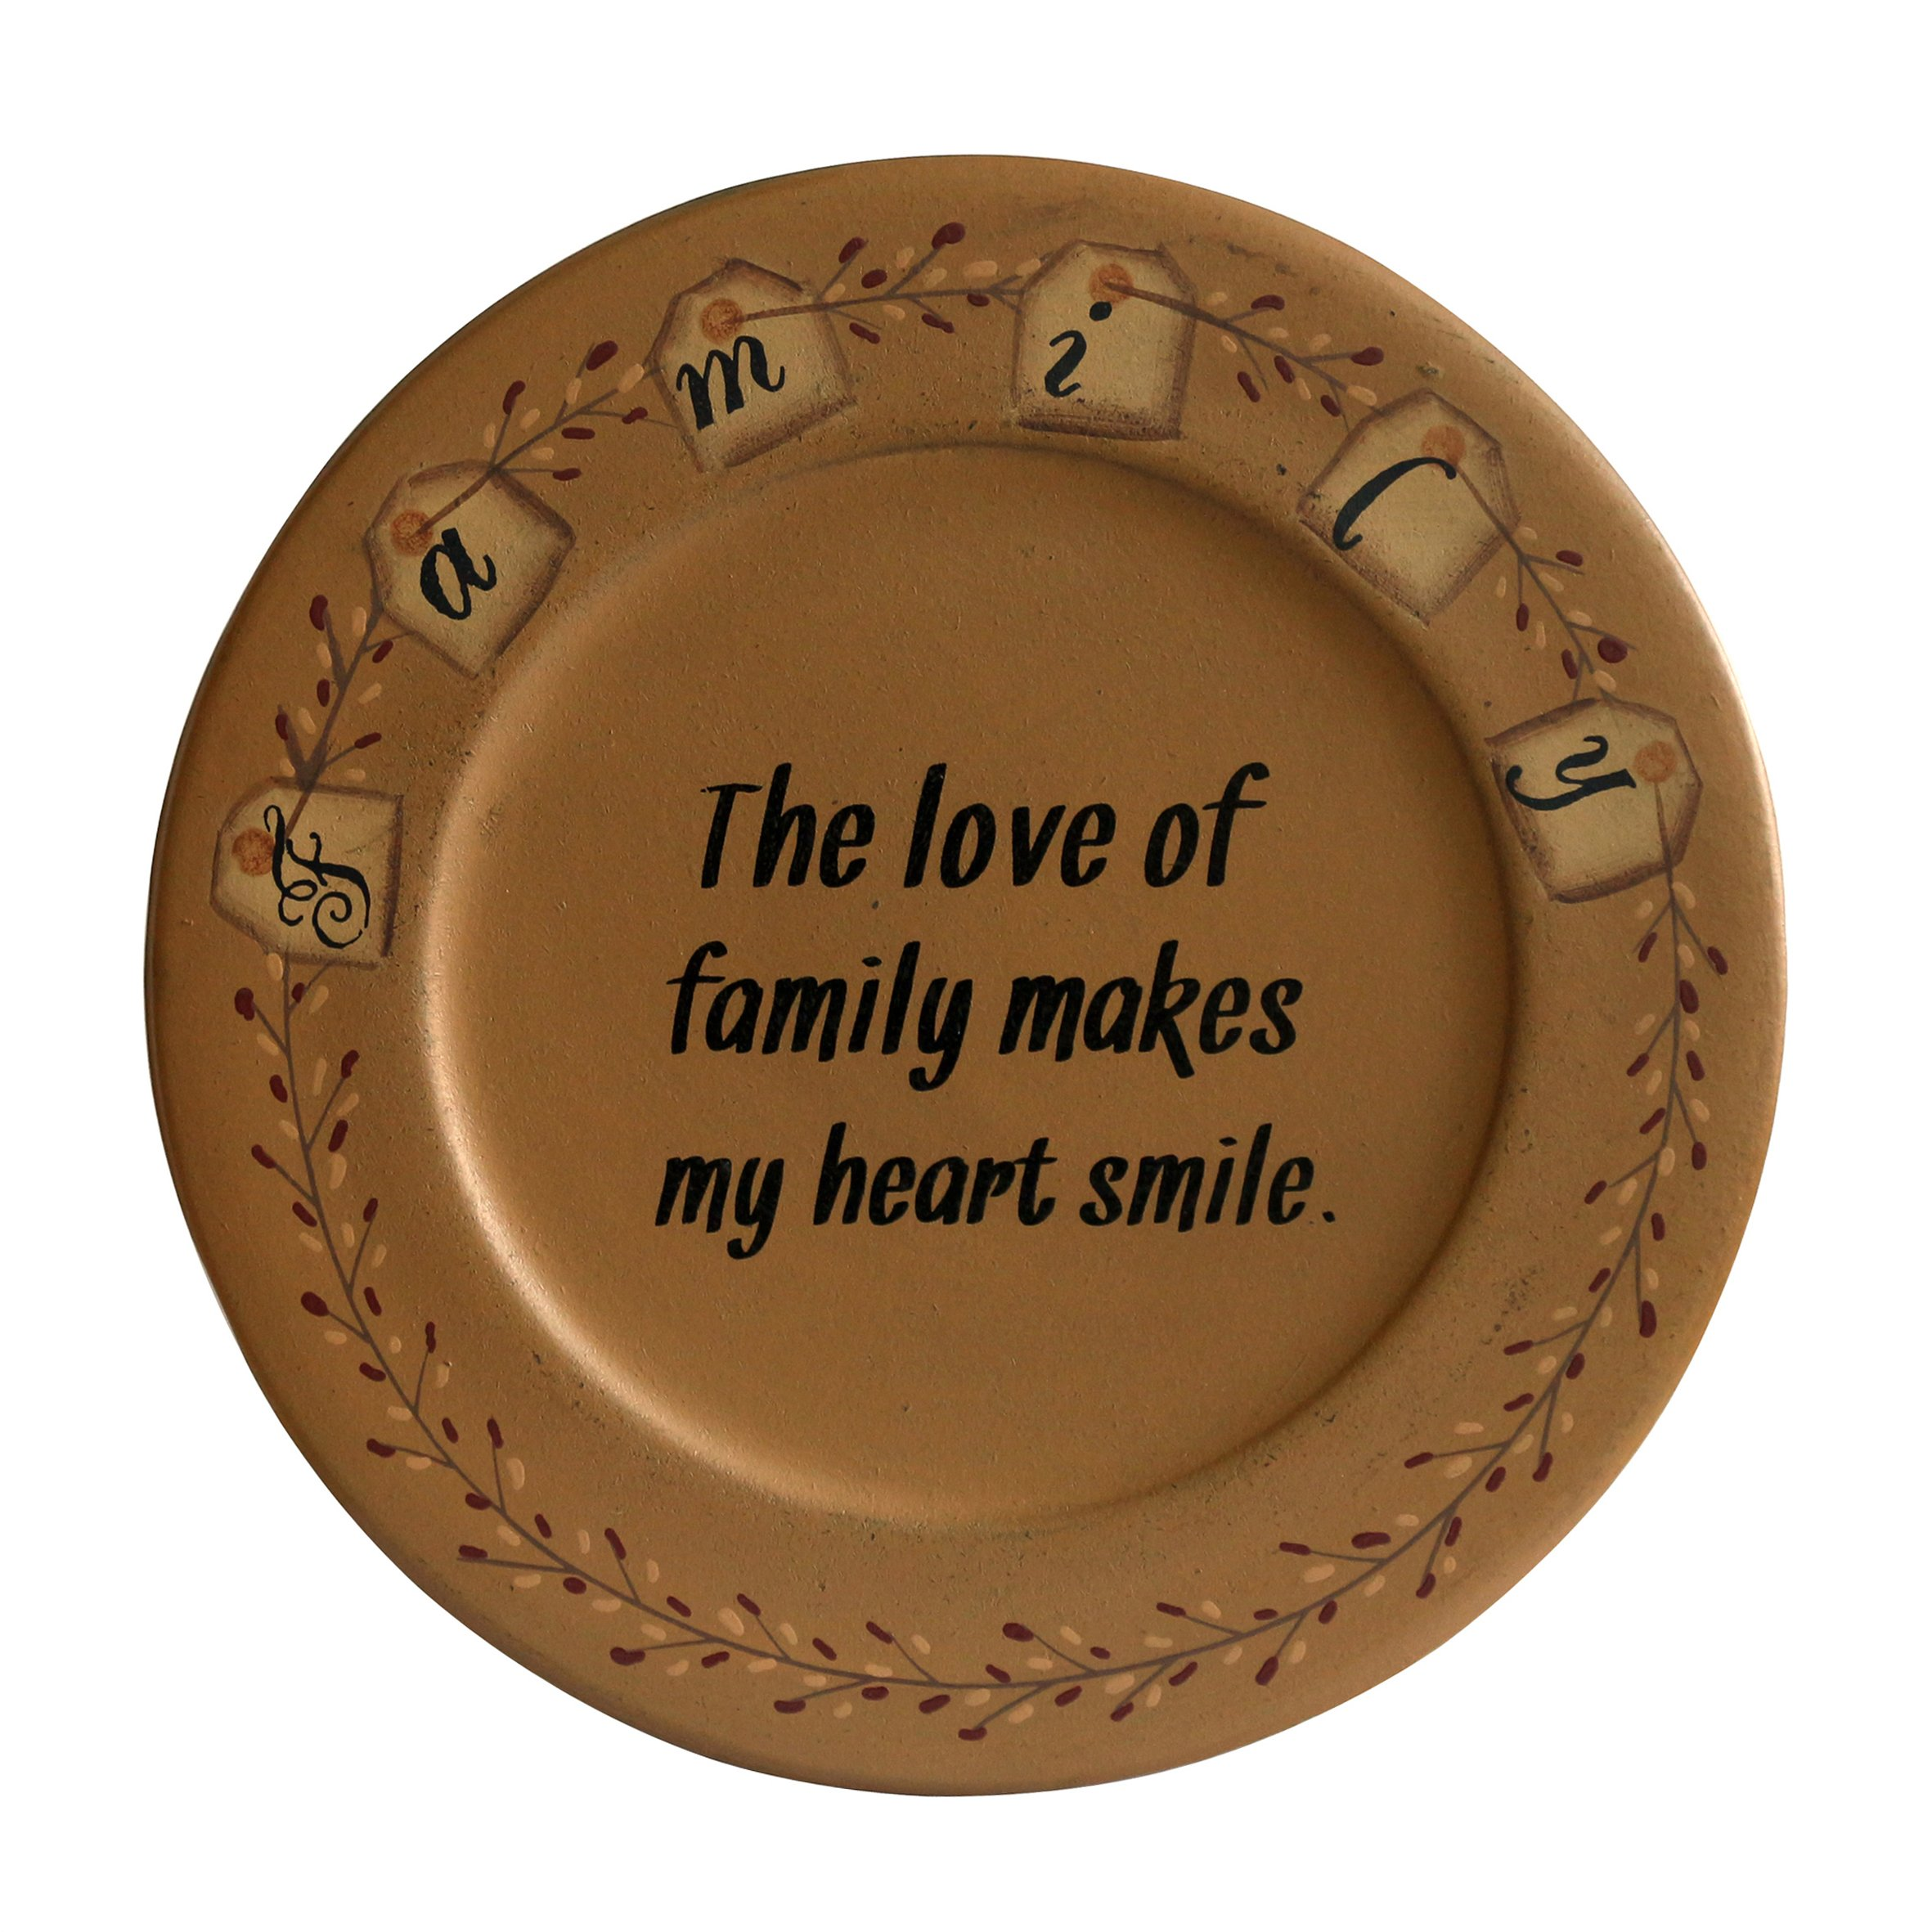 CVHOMEDECO.. Primitive Country Wood Decorative Plate Round Vintage Display Wooden Family Plate Home Décor Art, 9-1/2'' Dia. X 3/4''